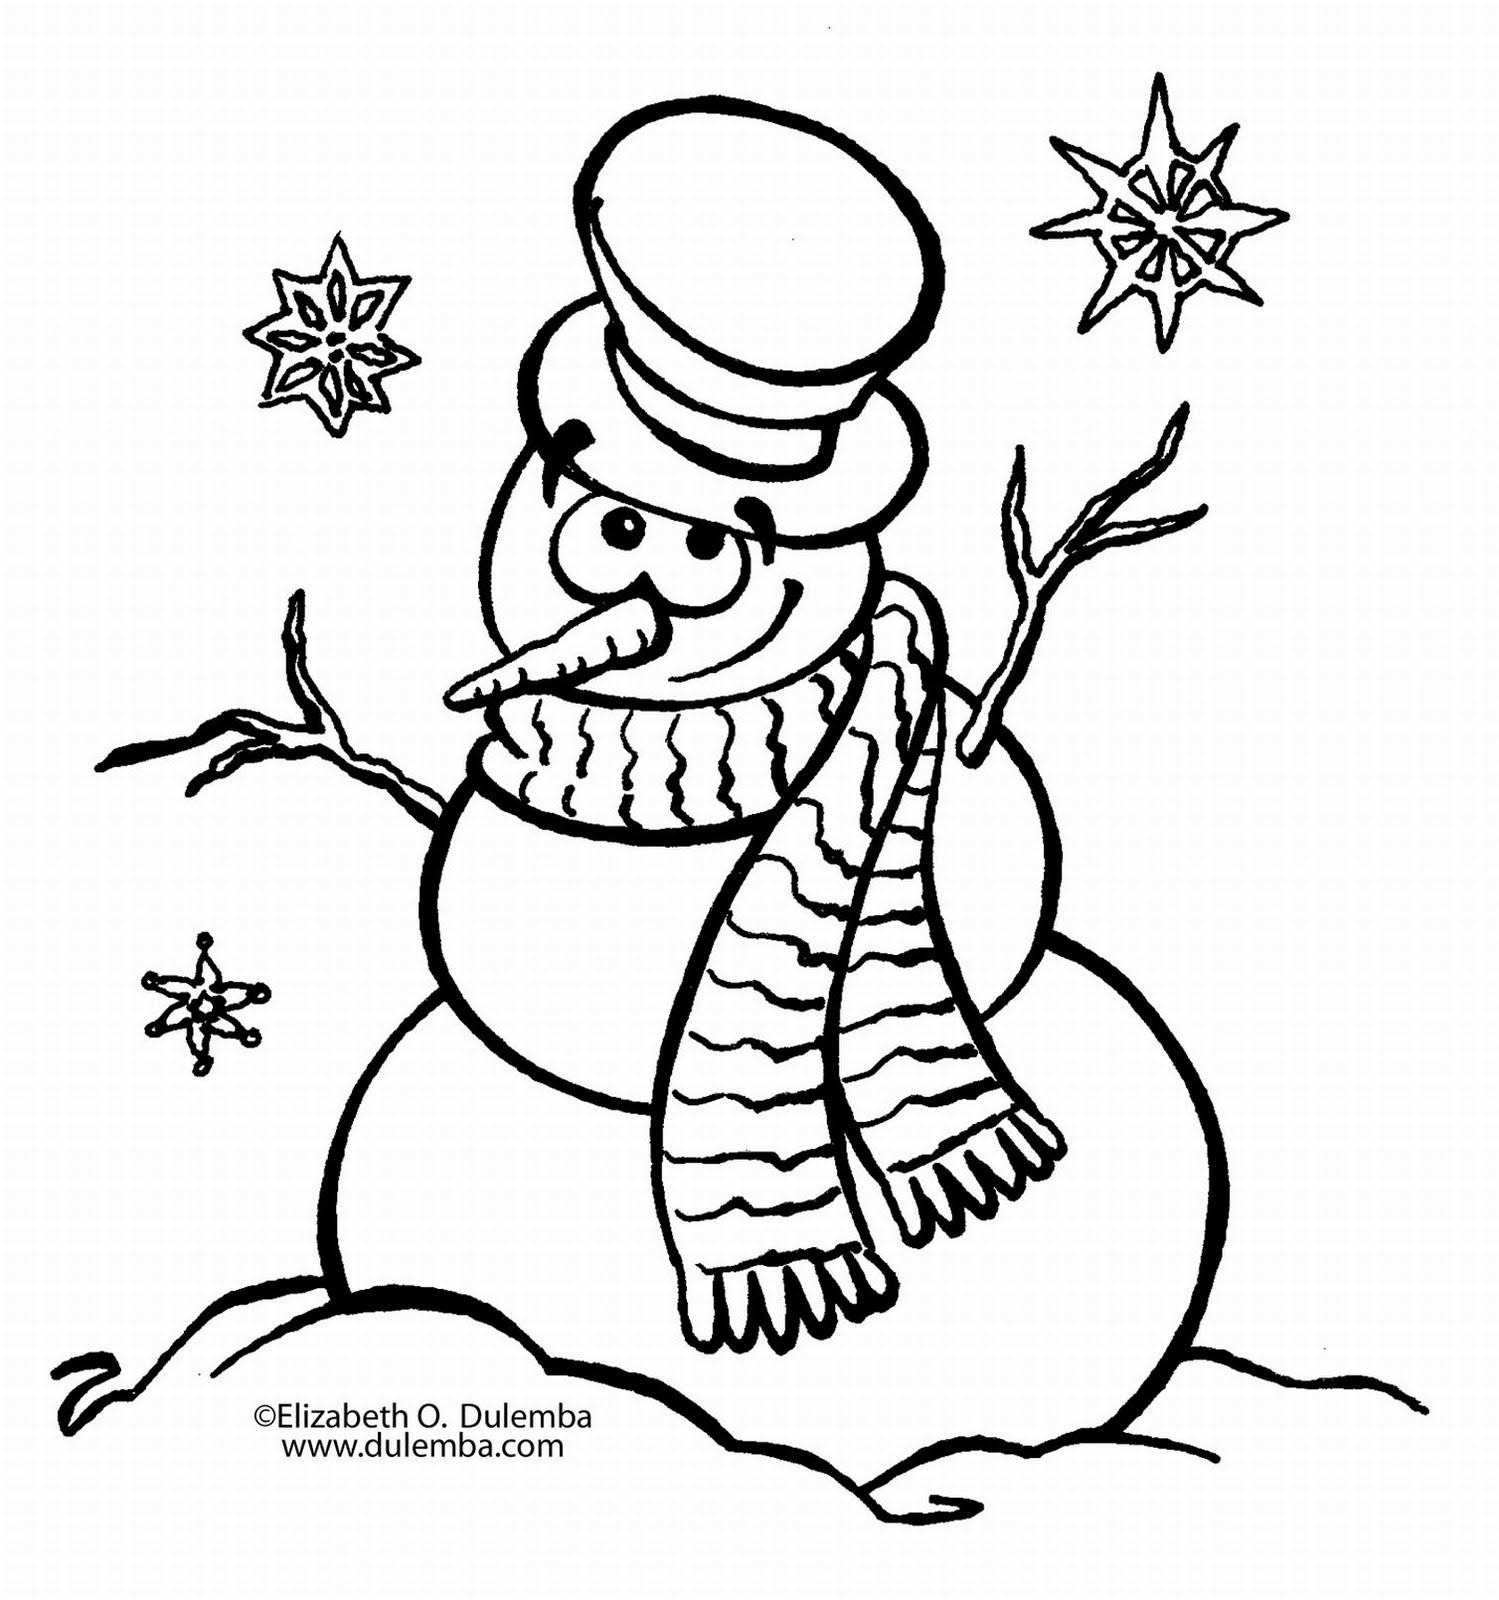 Blank Snowman Coloring Pages gt gt